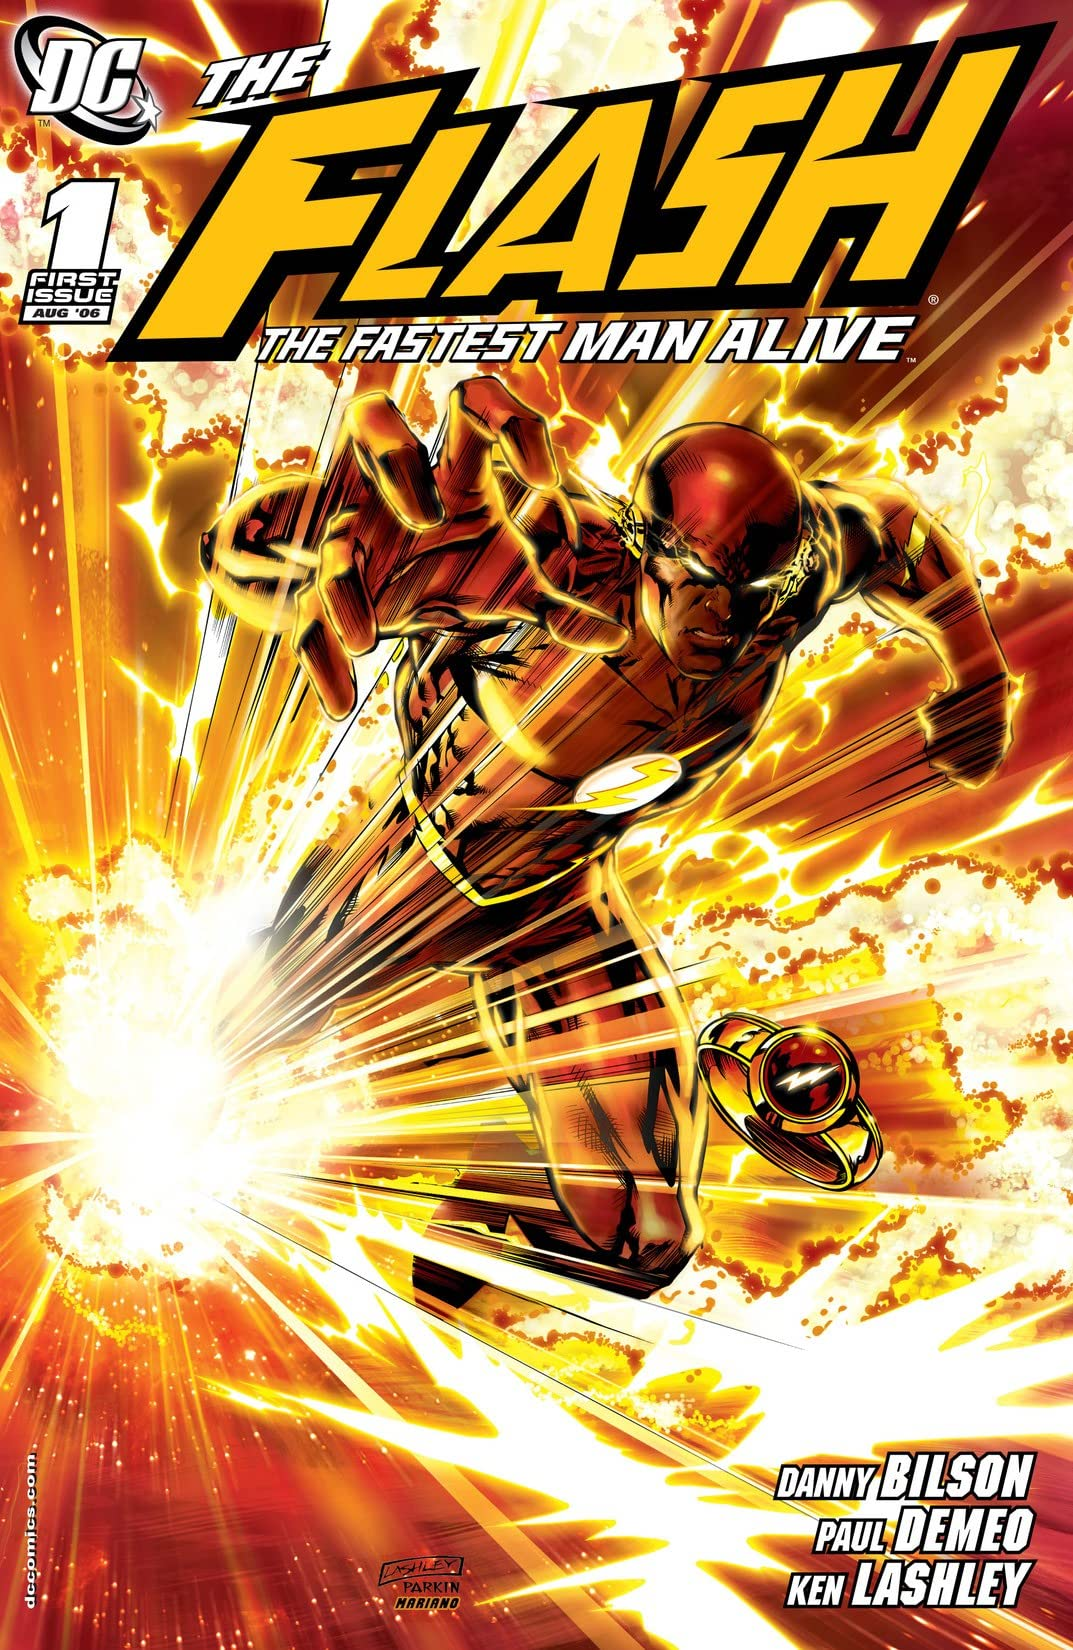 The Flash: The Fastest Man Alive (2006-2007) #1